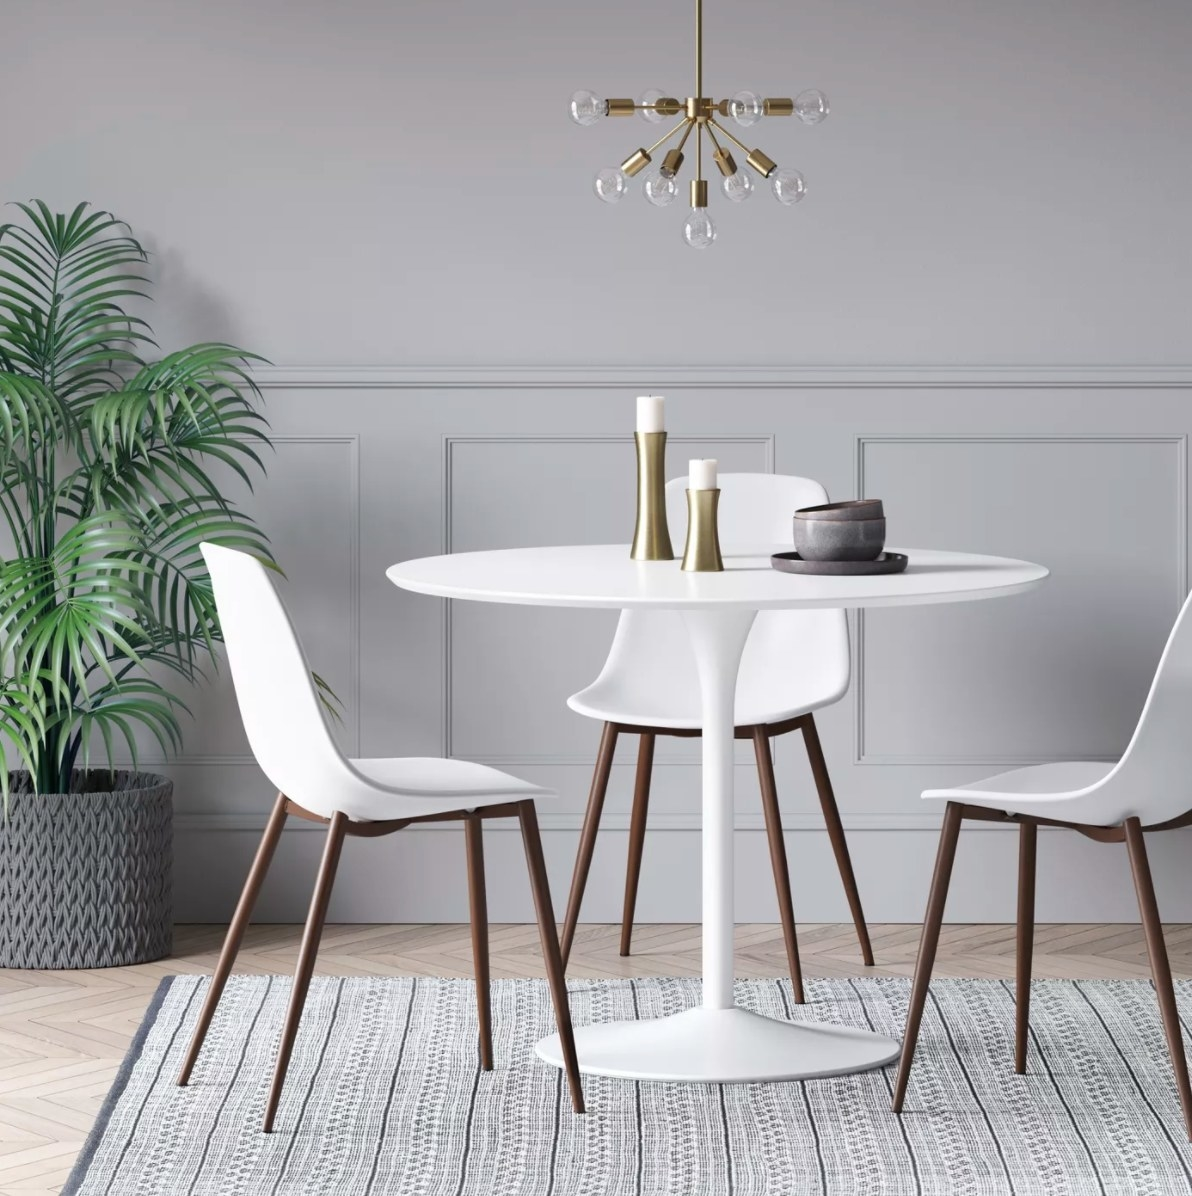 The round dining table with a metal base in white holding candle sticks